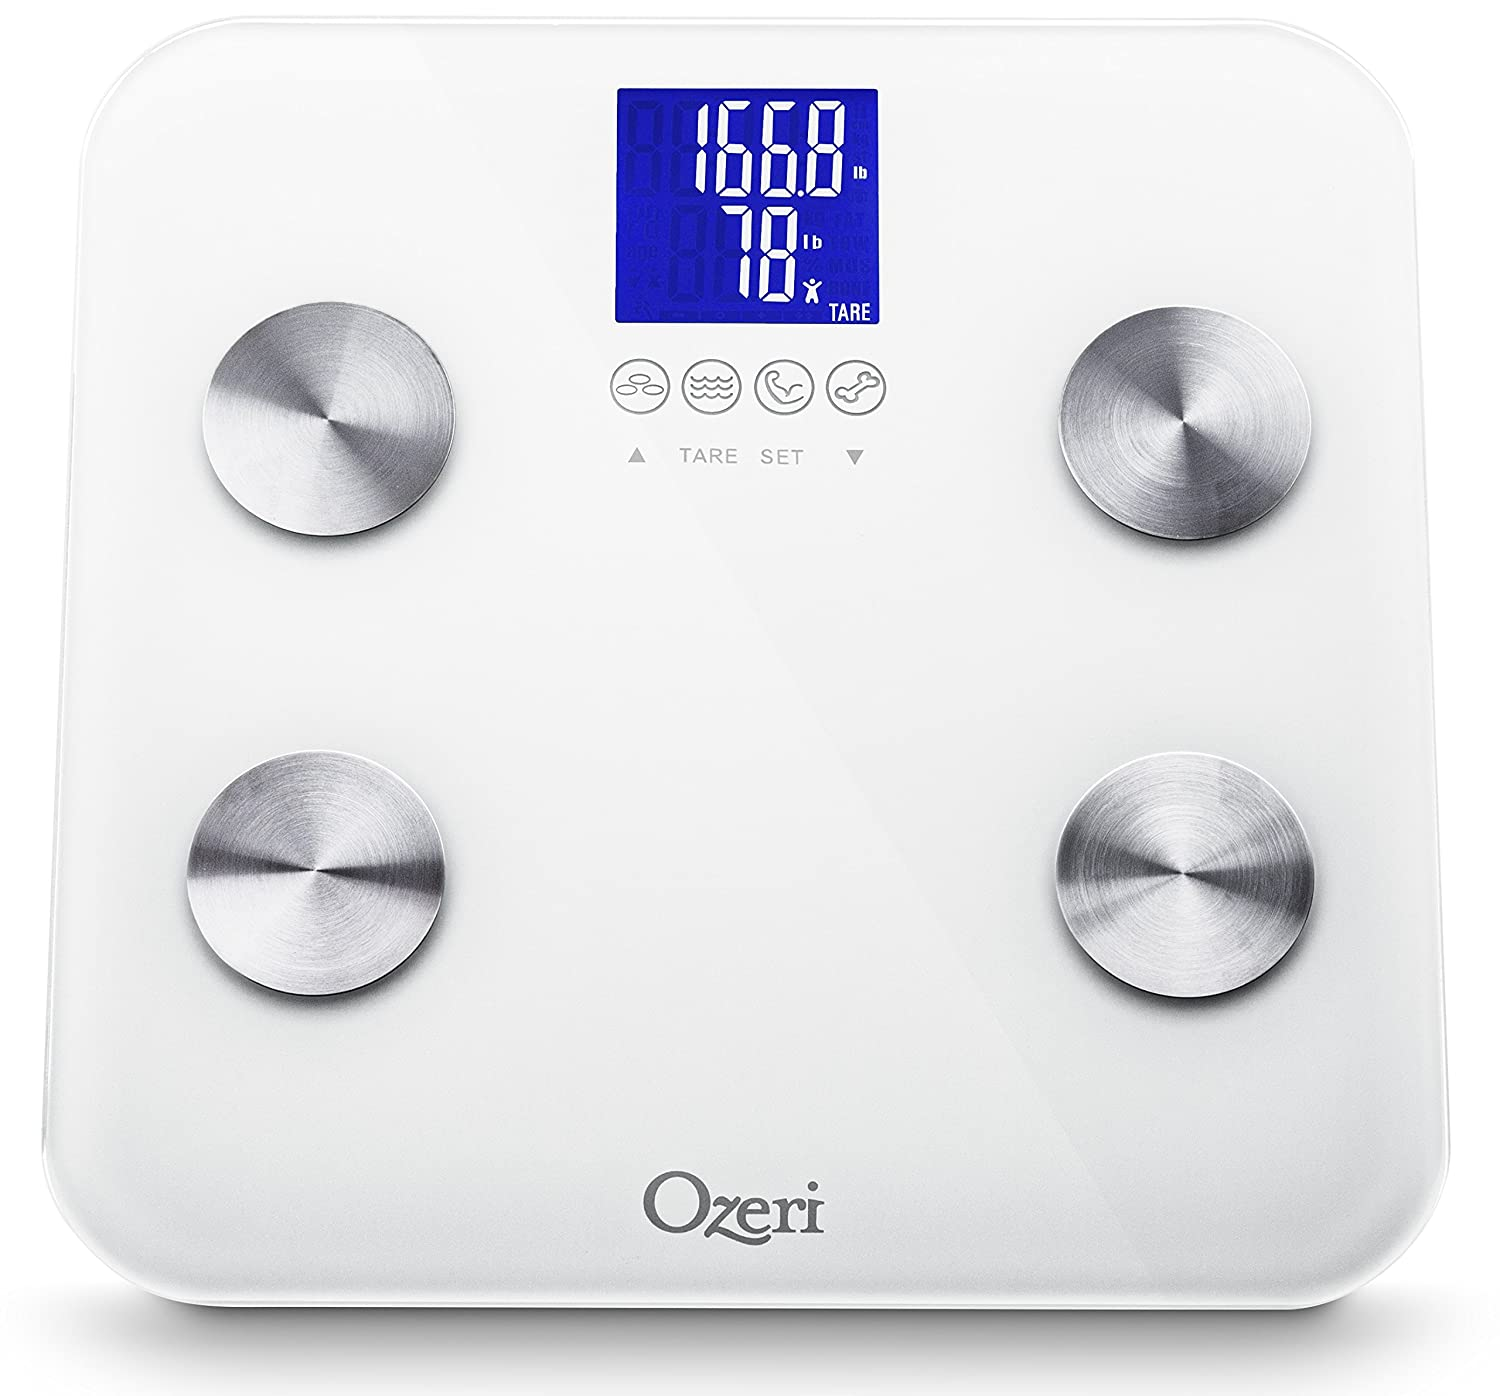 Ozeri Touch 440 lbs Total Body Bath Scale, White - Measures Weight, Fat, Muscle, Bone & Hydration with Auto Recognition and Infant Tare Technology ZB13-W2